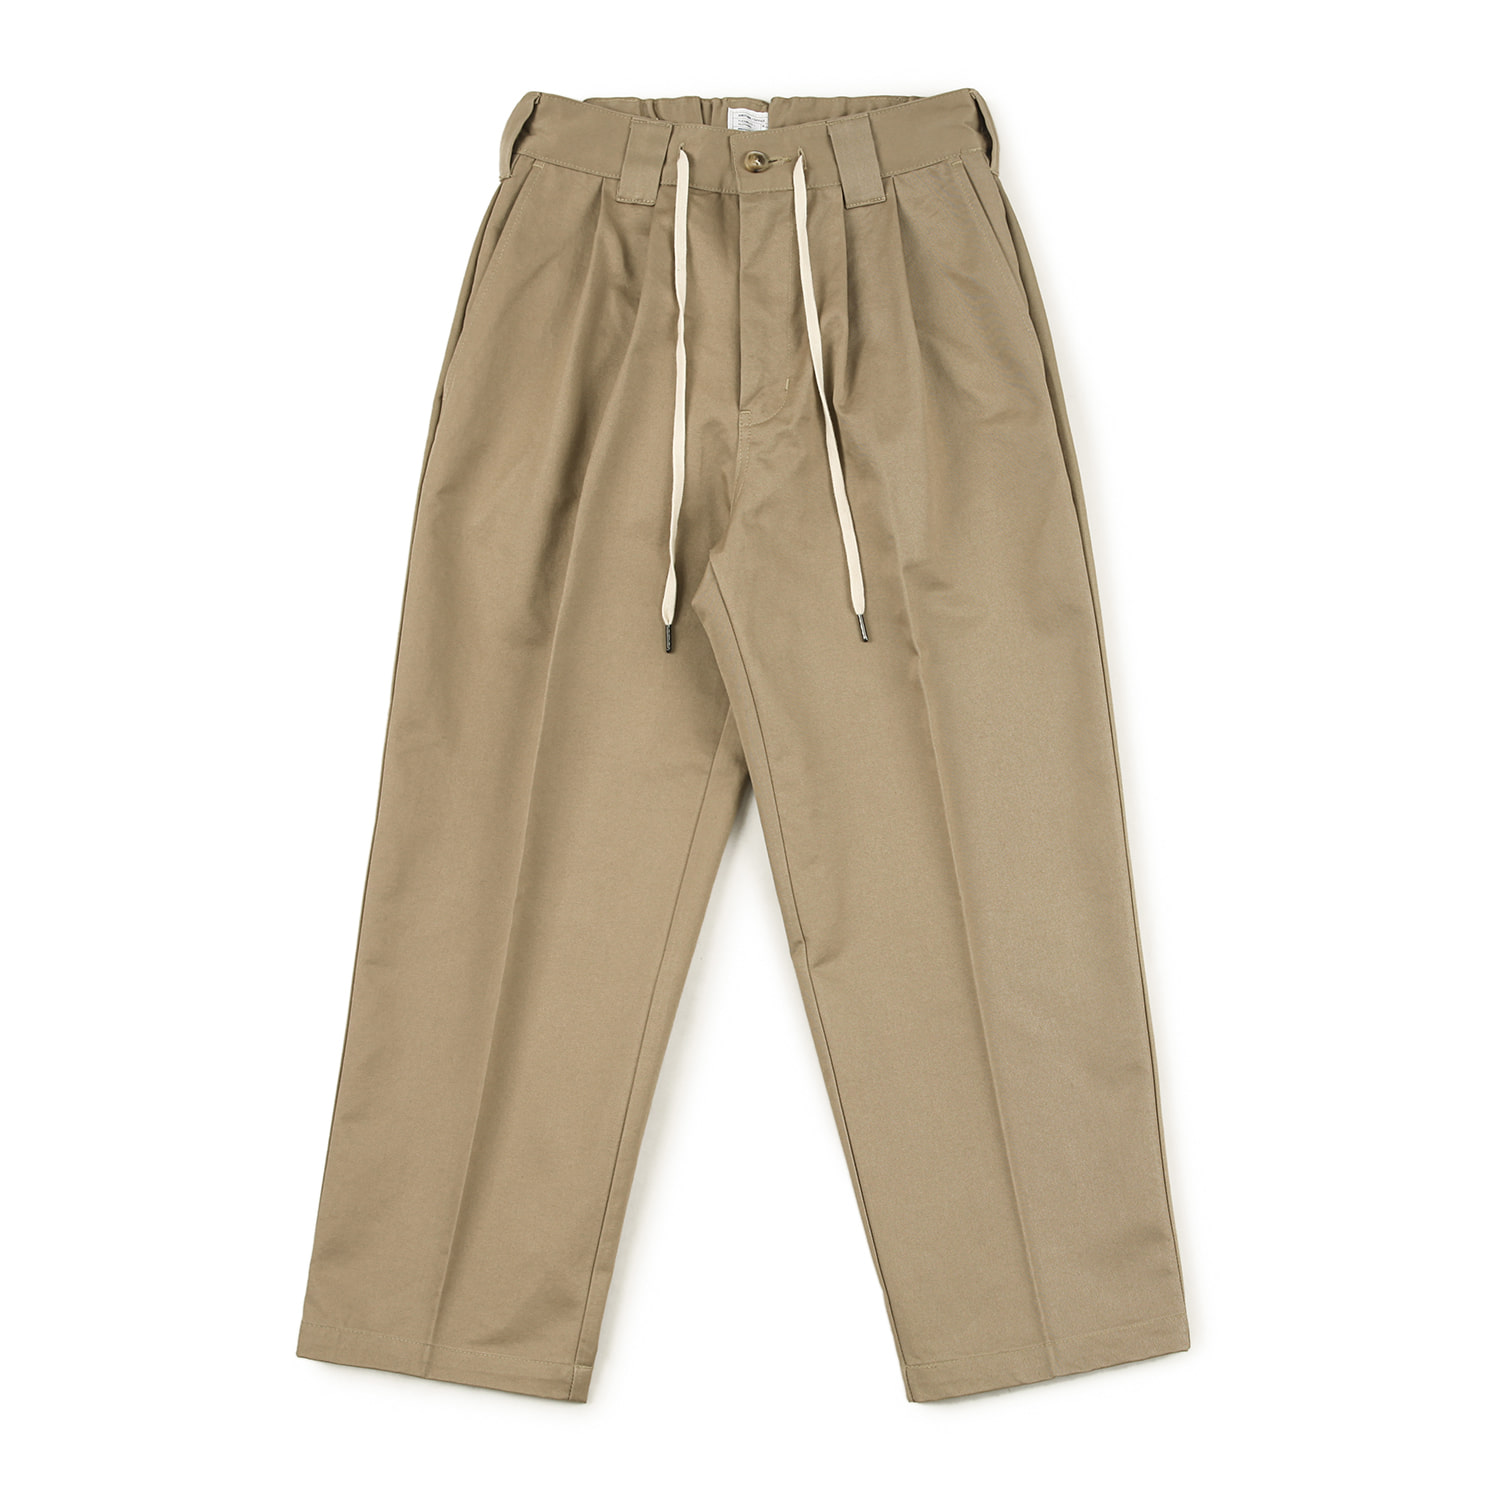 25% OFF_Skater Two tuck Pants (Khaki)